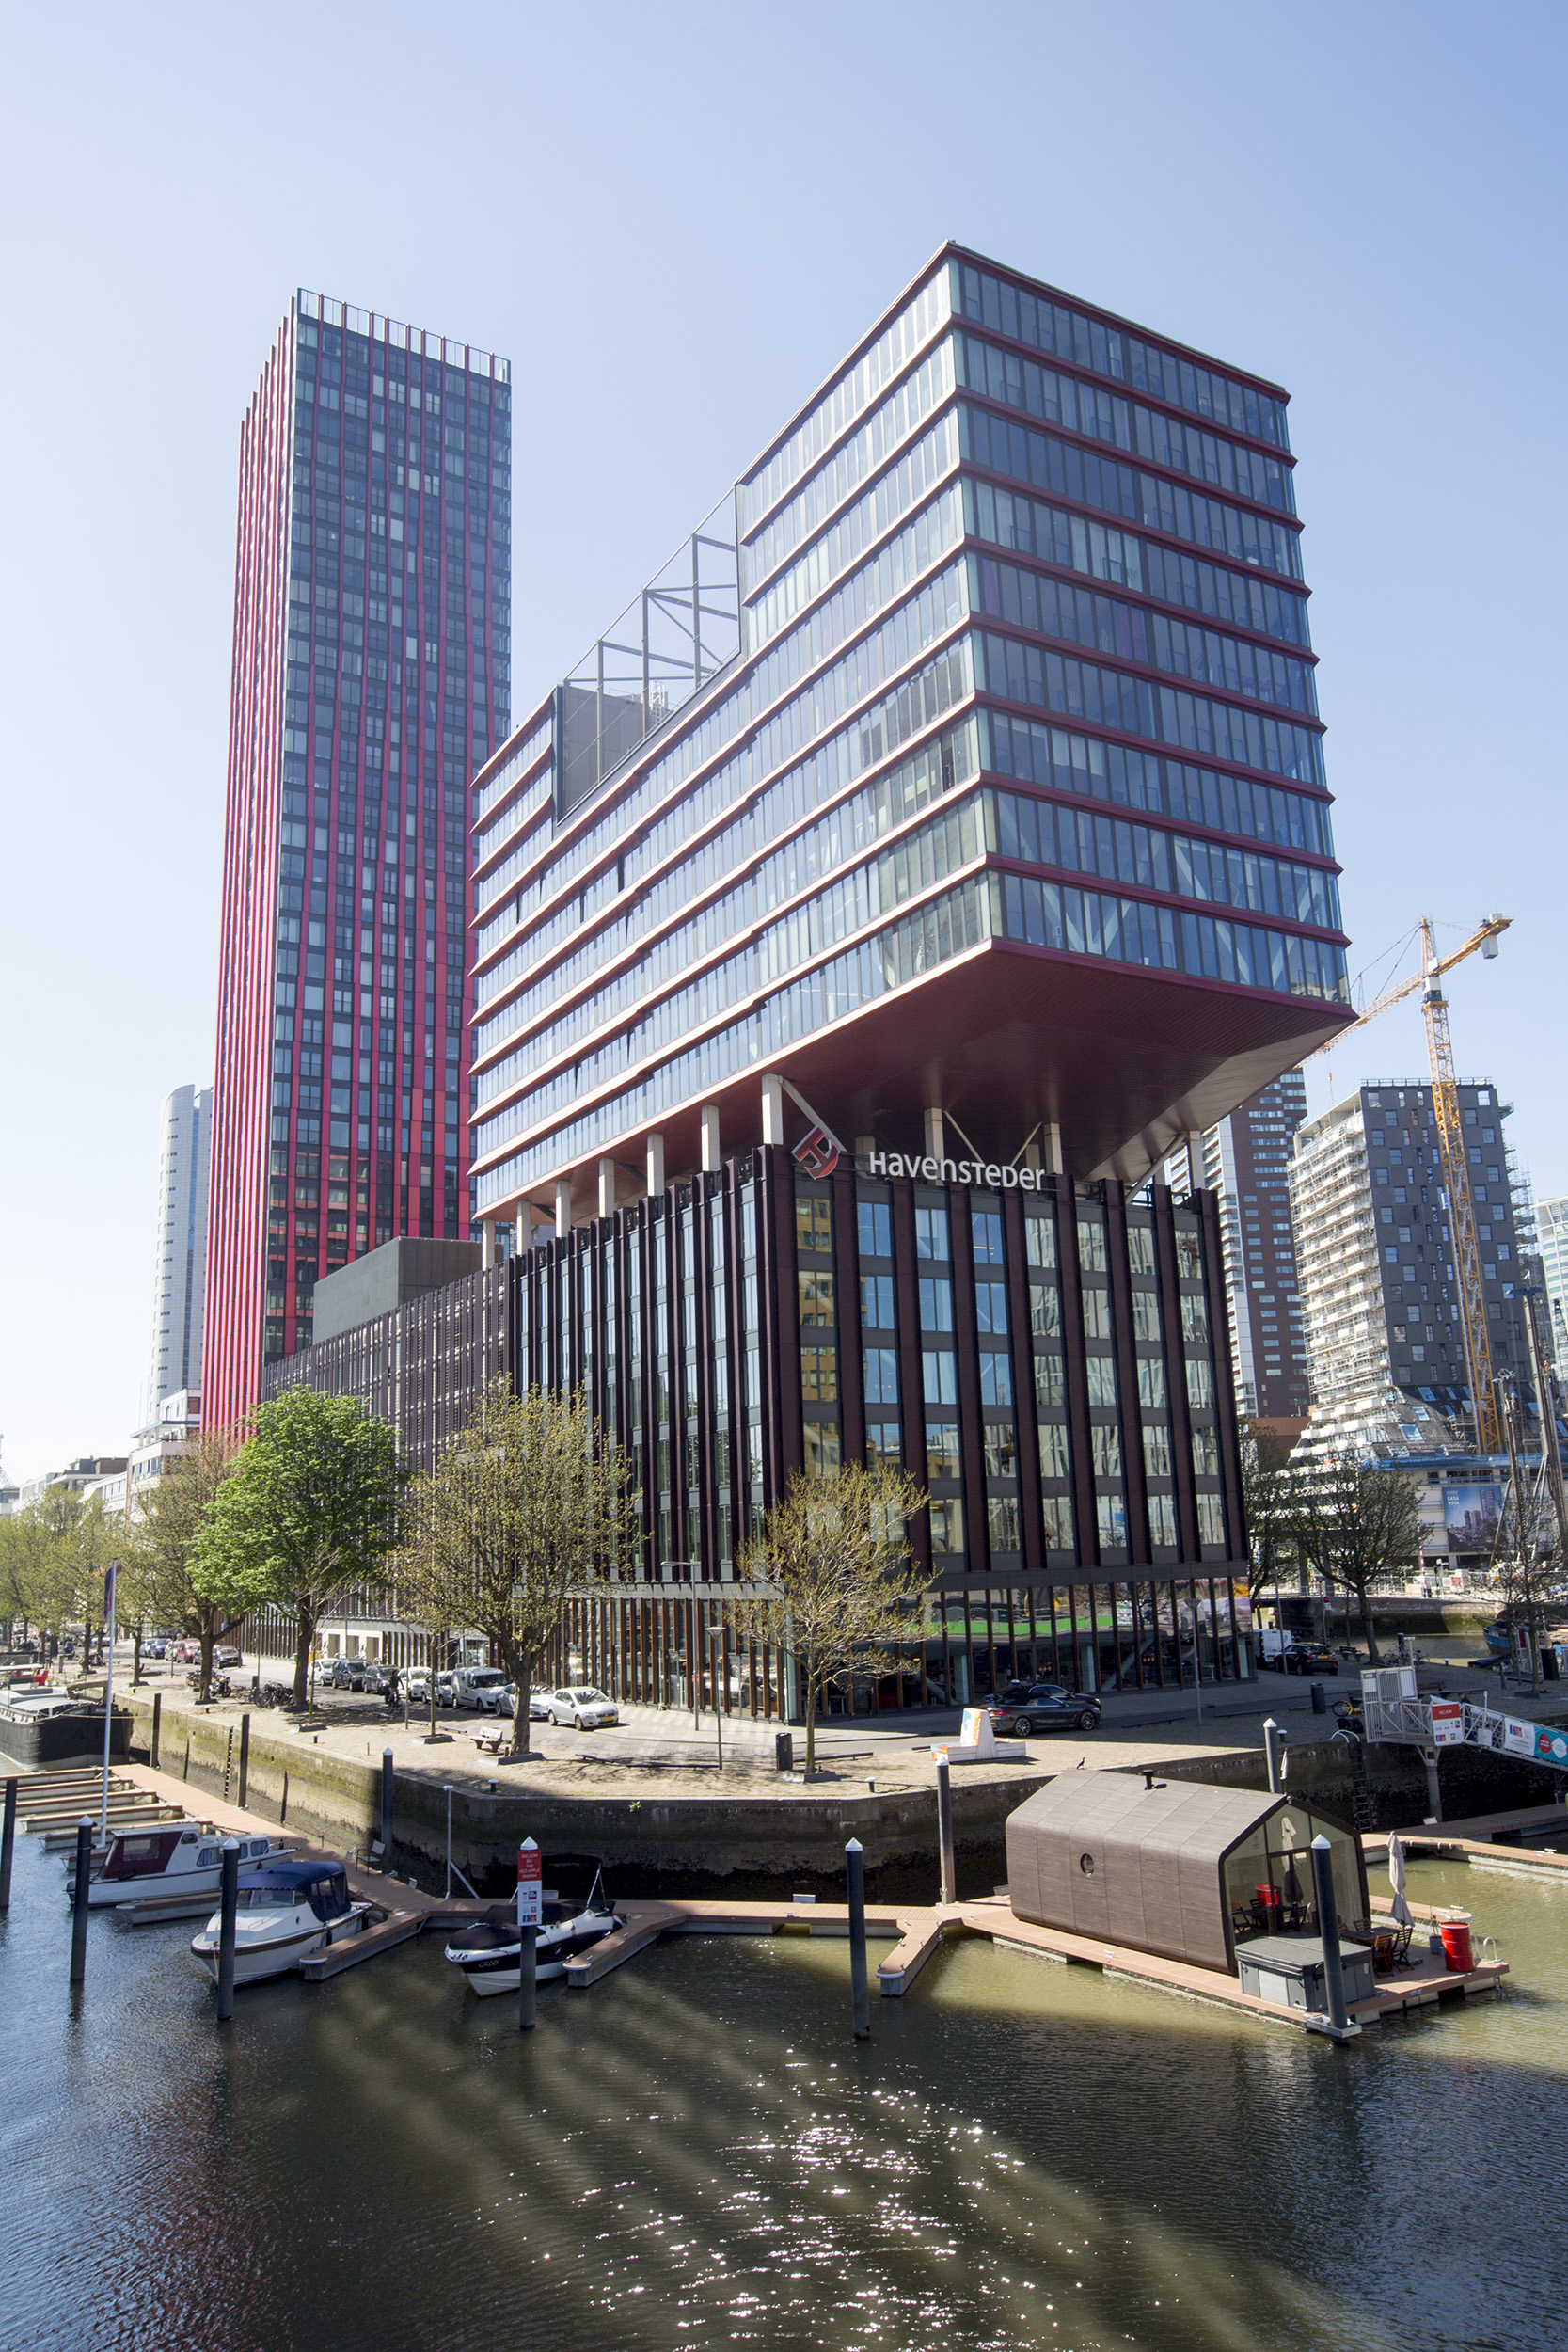 Rotterdam Havensteder The Red Apple architectuur kantoorgebouwen